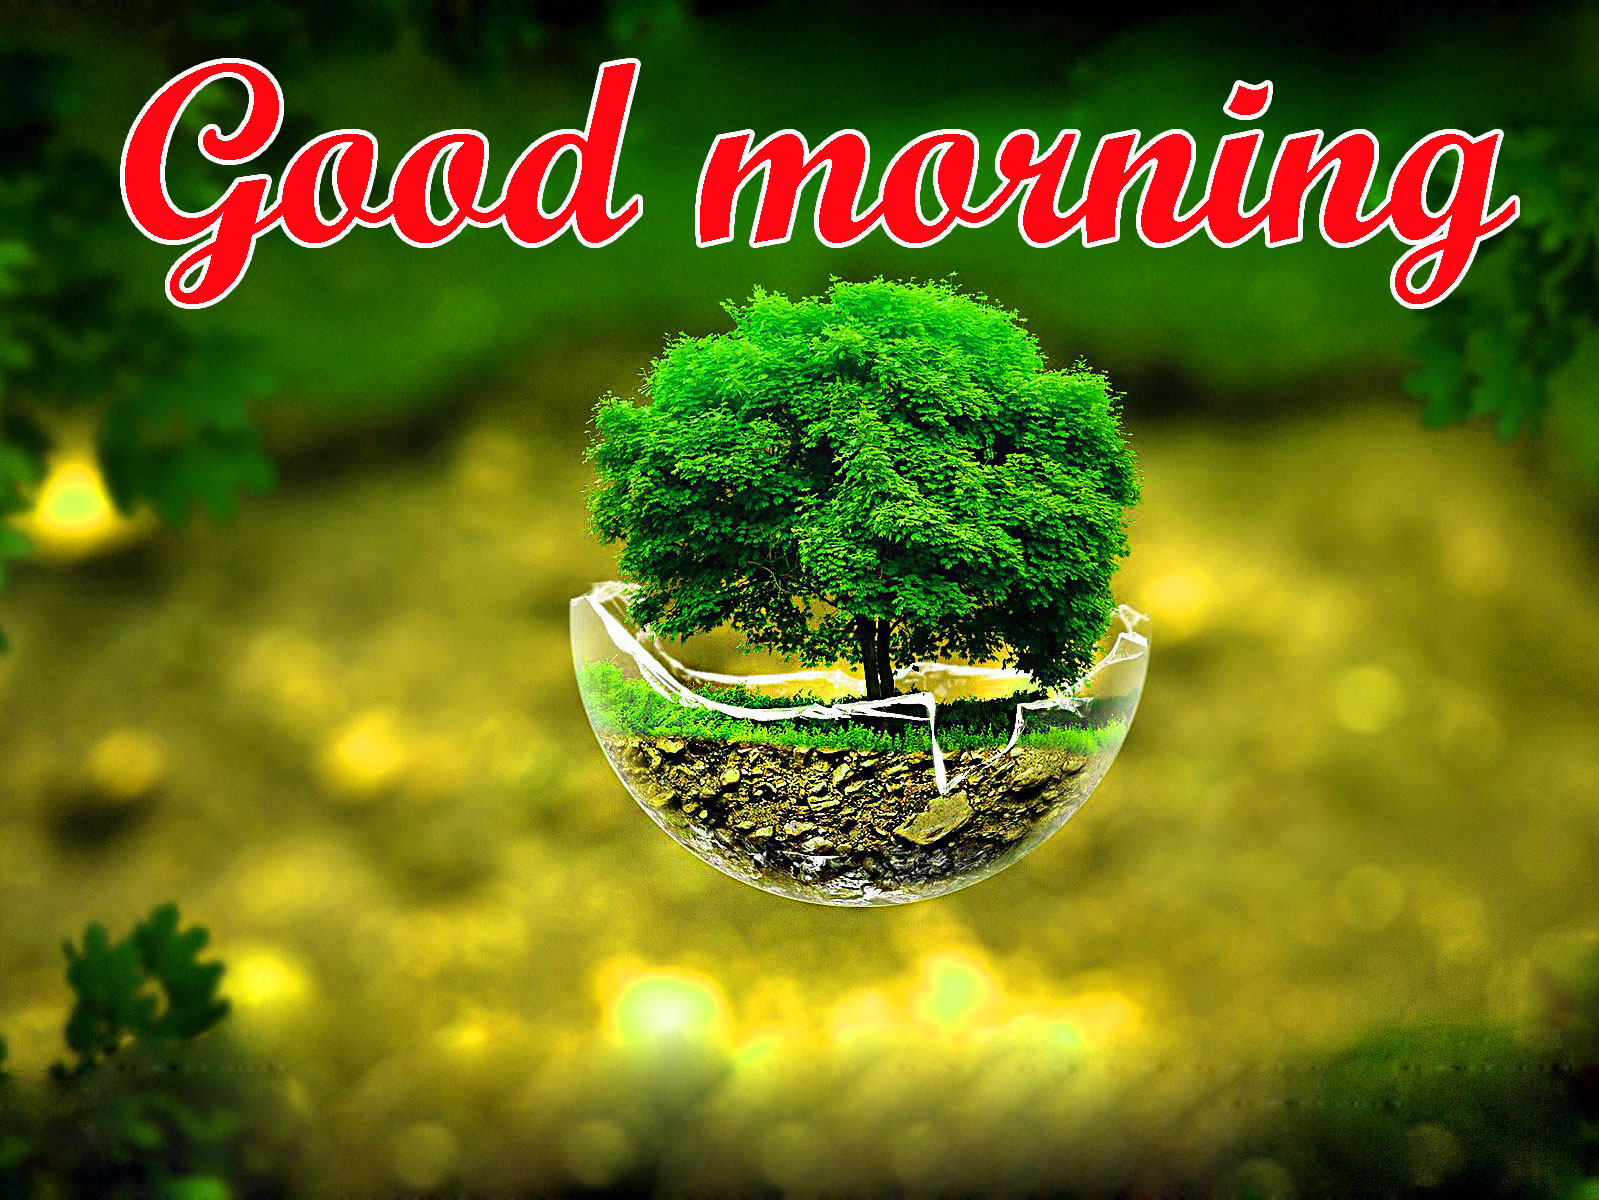 BEAUTIFUL 3D GOOD MORNING IMAGES PHOTO PICS WITH BEAUTIFUL NATURE